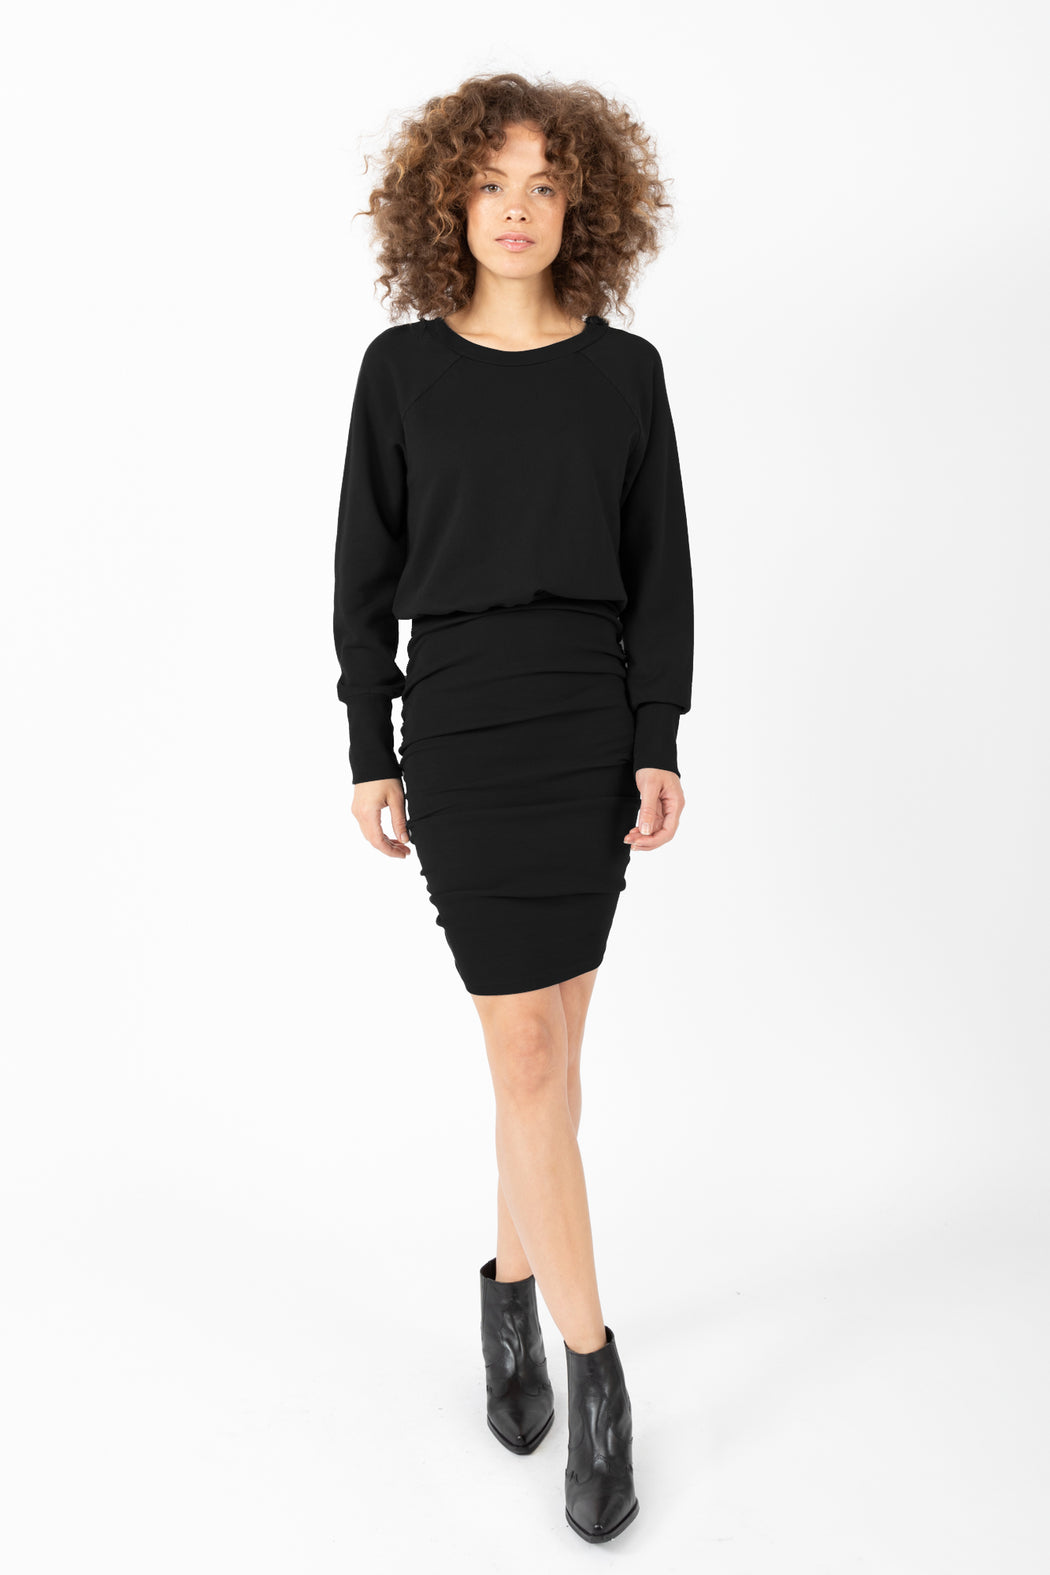 Our Hang Out Dress has precise proportions of your favorite baggy sweatshirt combined with a stretchy rib pencil skirt.